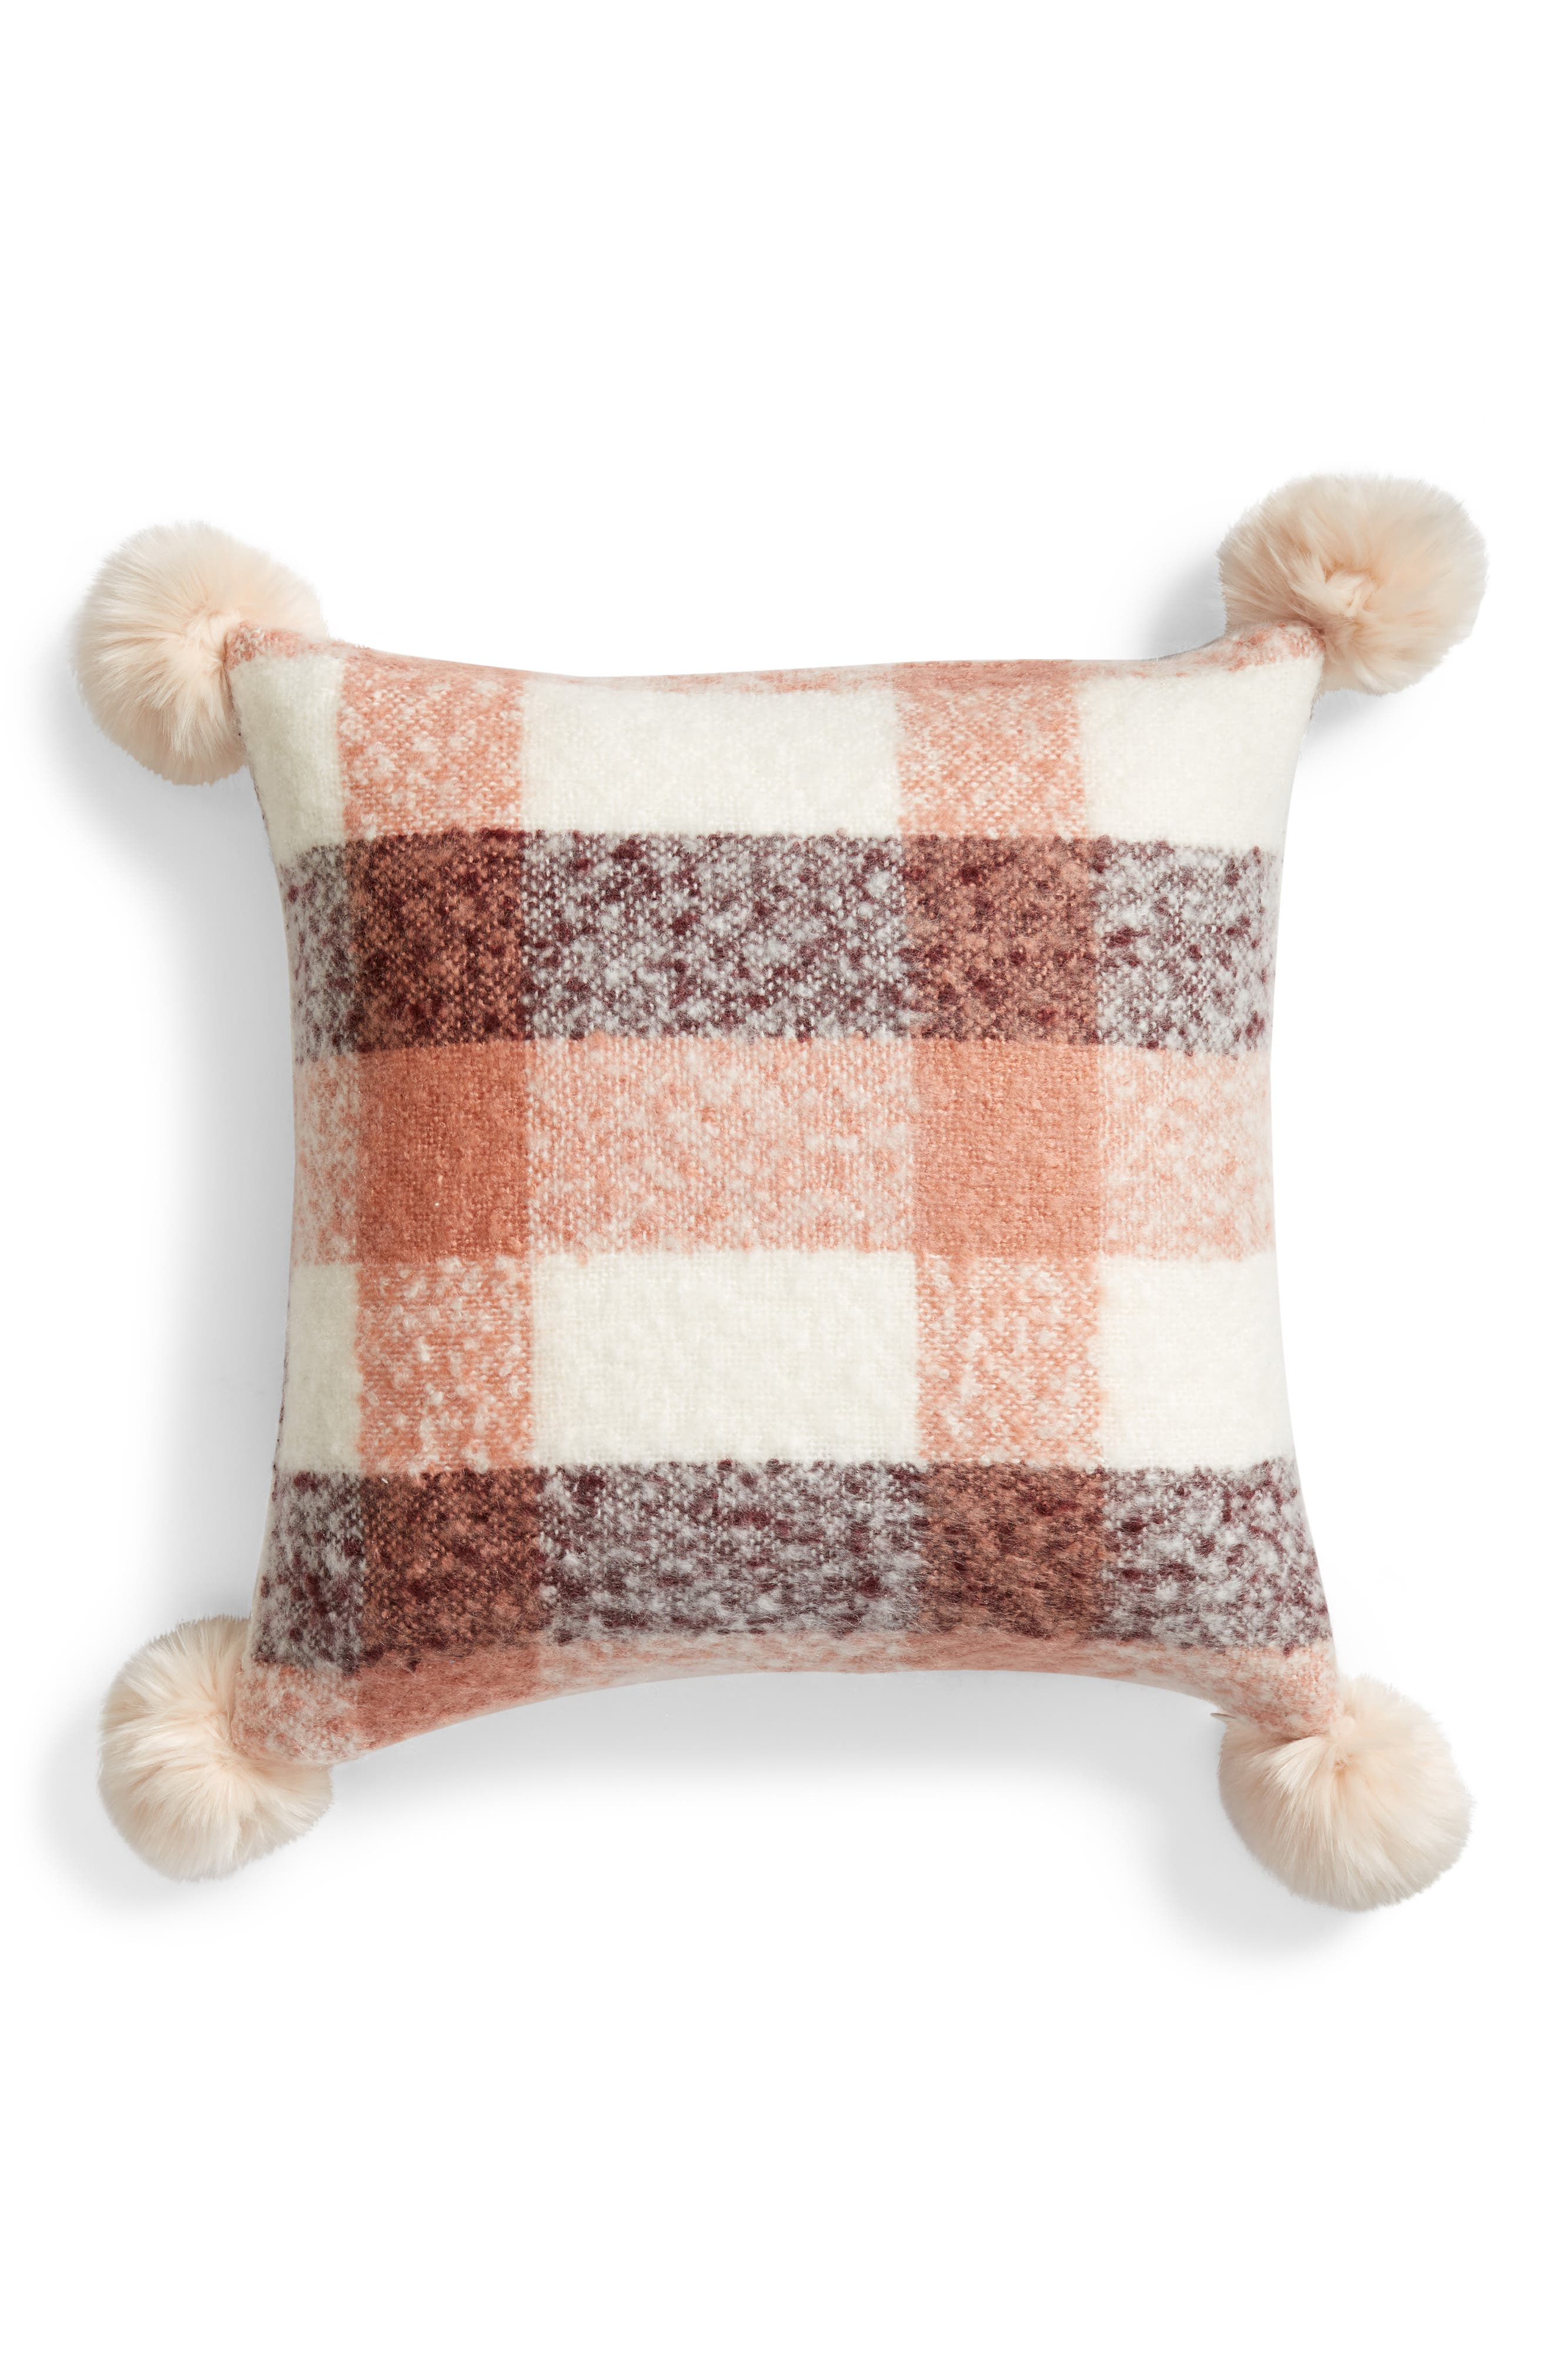 NORDSTROM AT HOME, Brushed Faux Fur Pom Accent Pillow, Main thumbnail 1, color, PINK DAWN MULTI